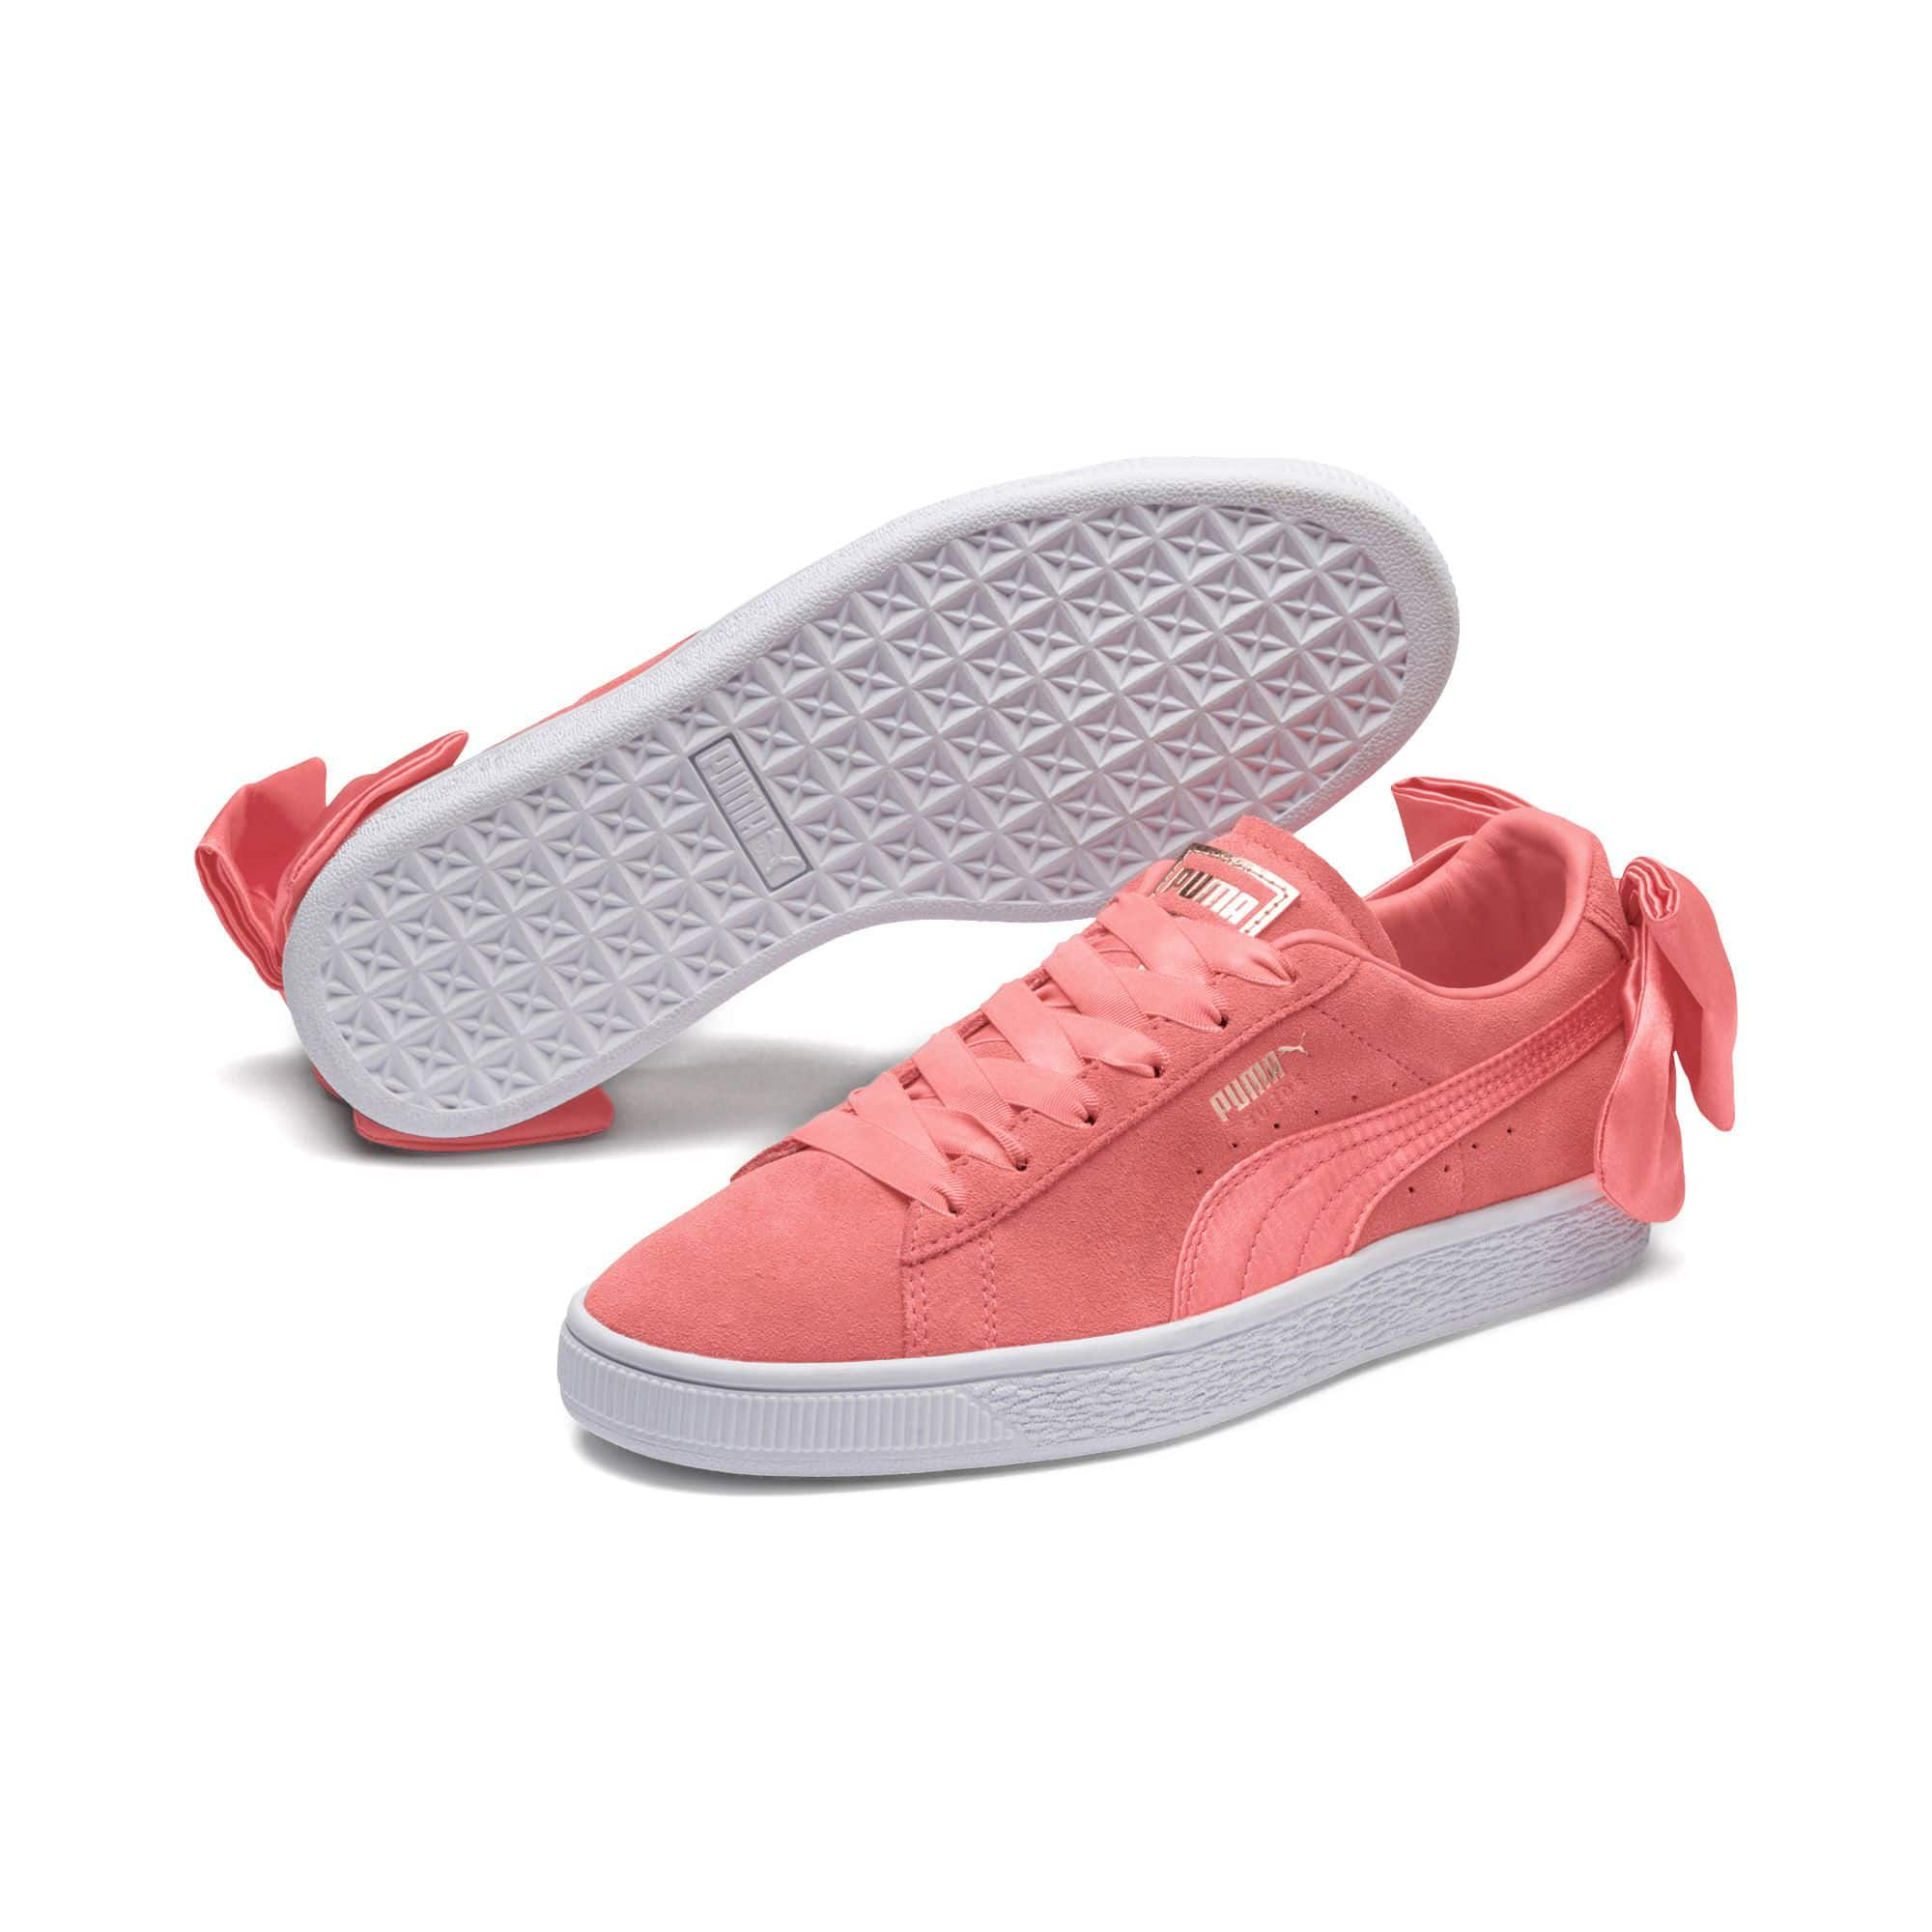 PUMA Coupon for 20% off Women's Full Priced Products